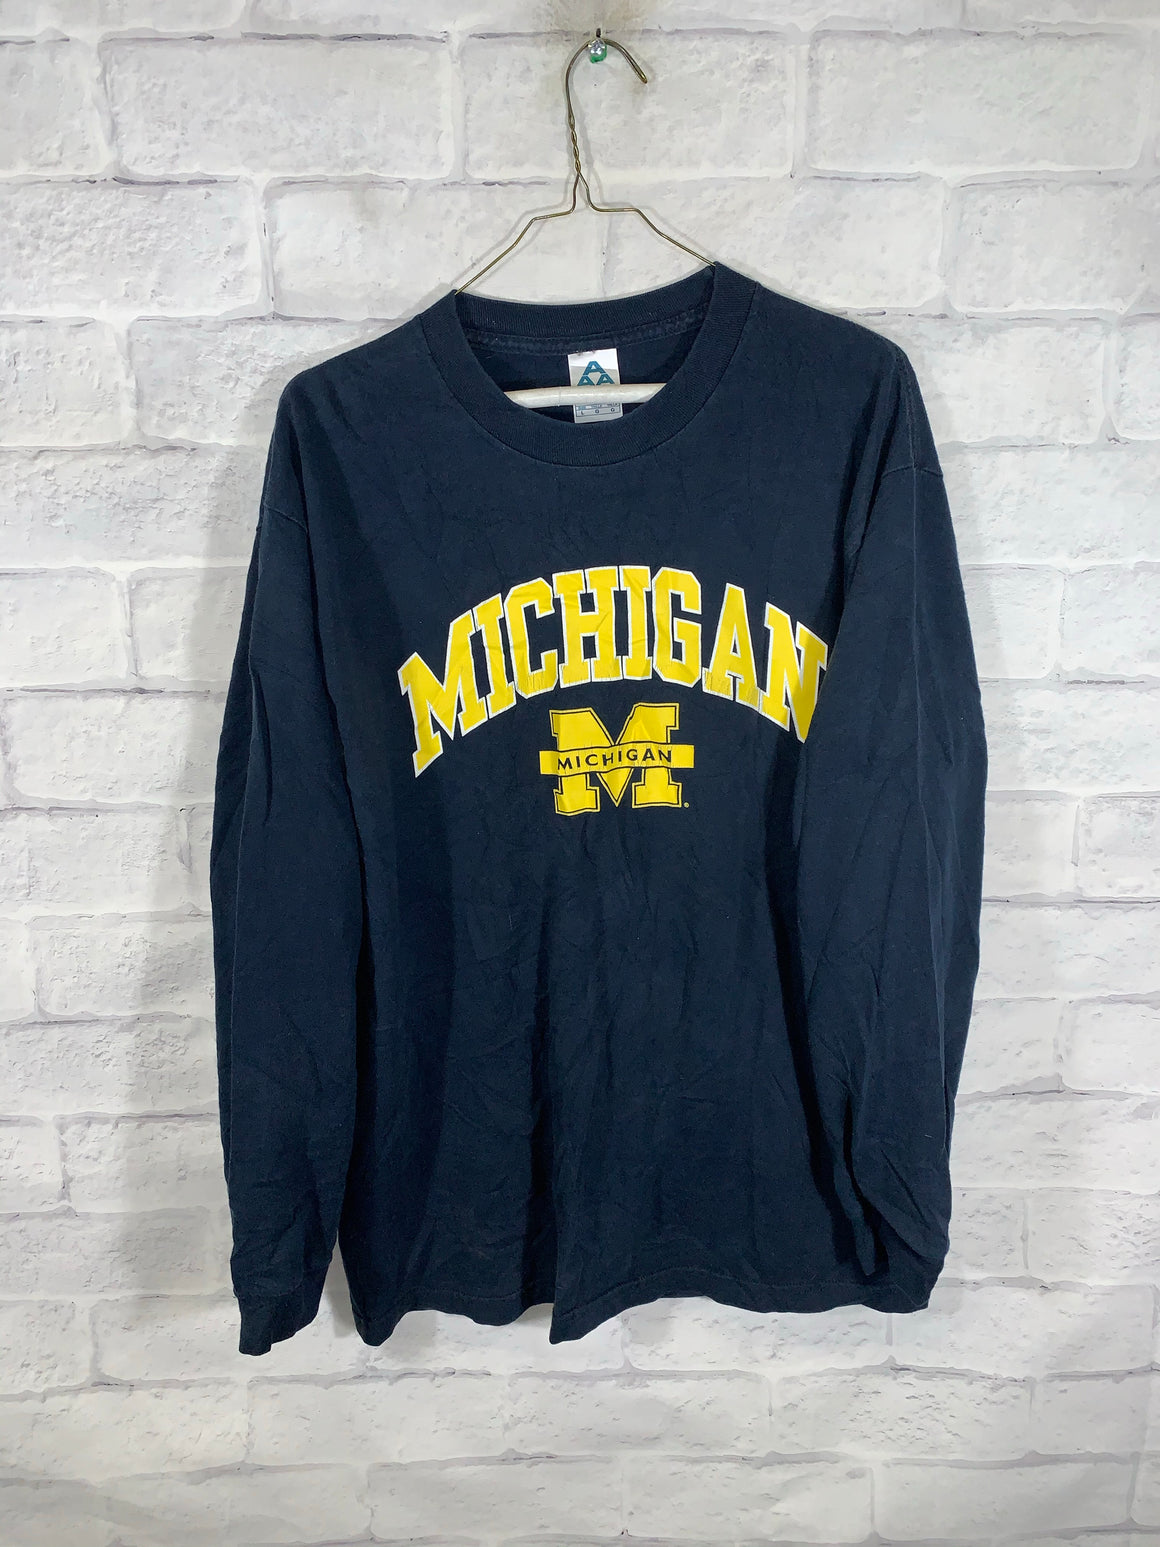 Blue University of Michigan Longsleeve Shirt